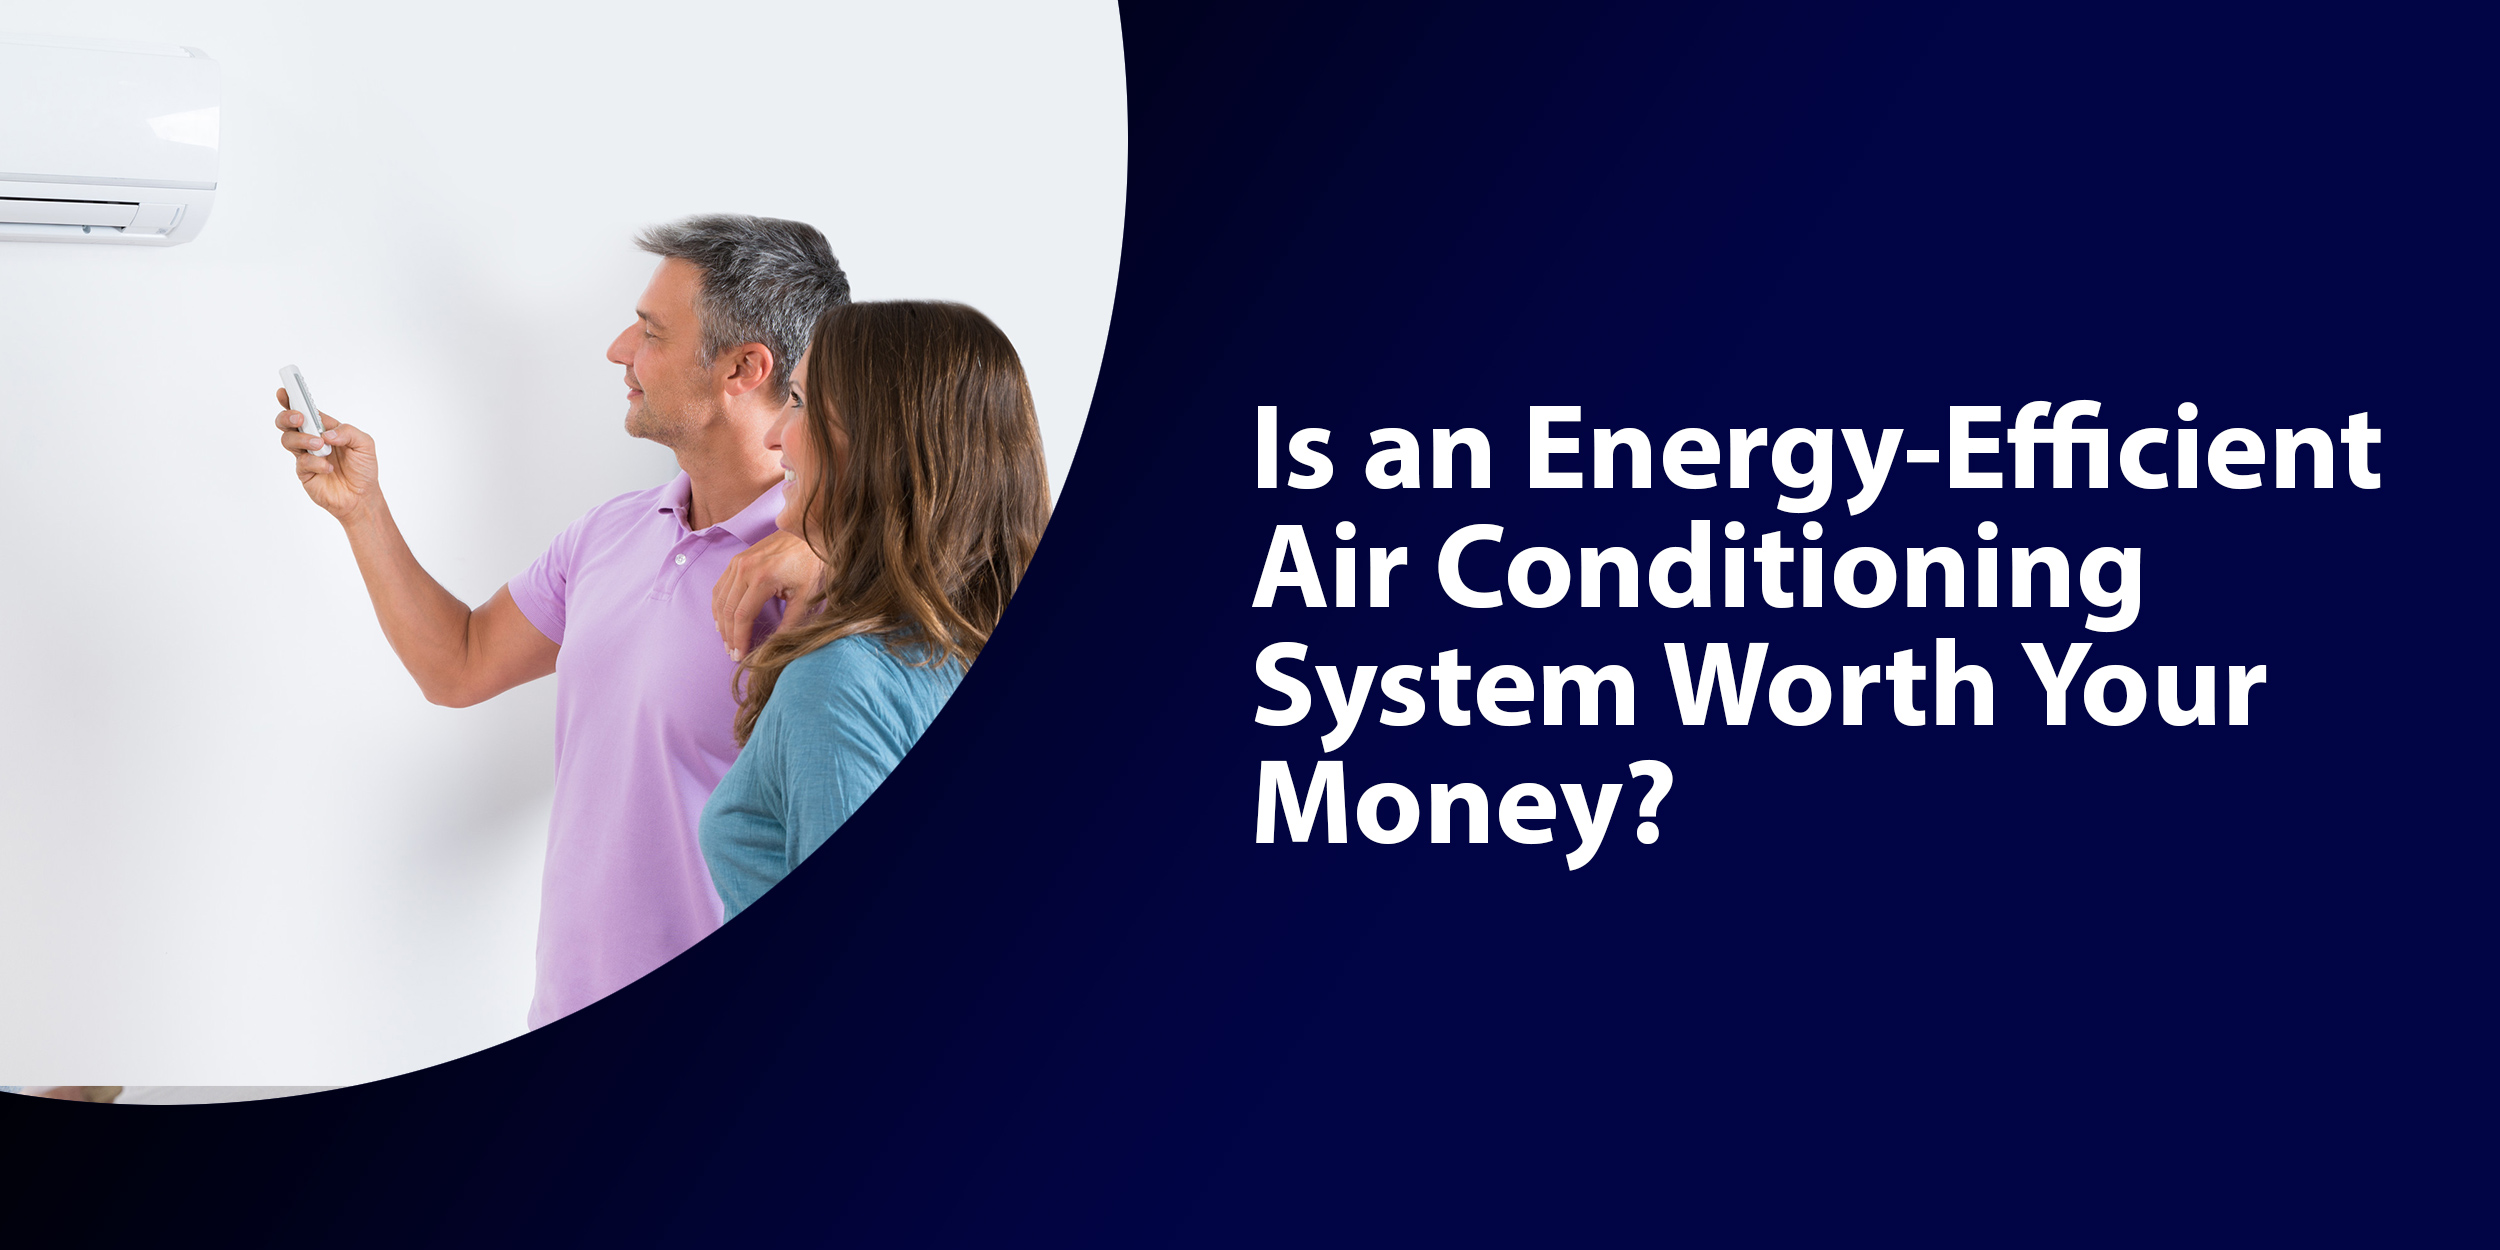 Is an Energy-Efficient Air Conditioning System Worth Your Money?